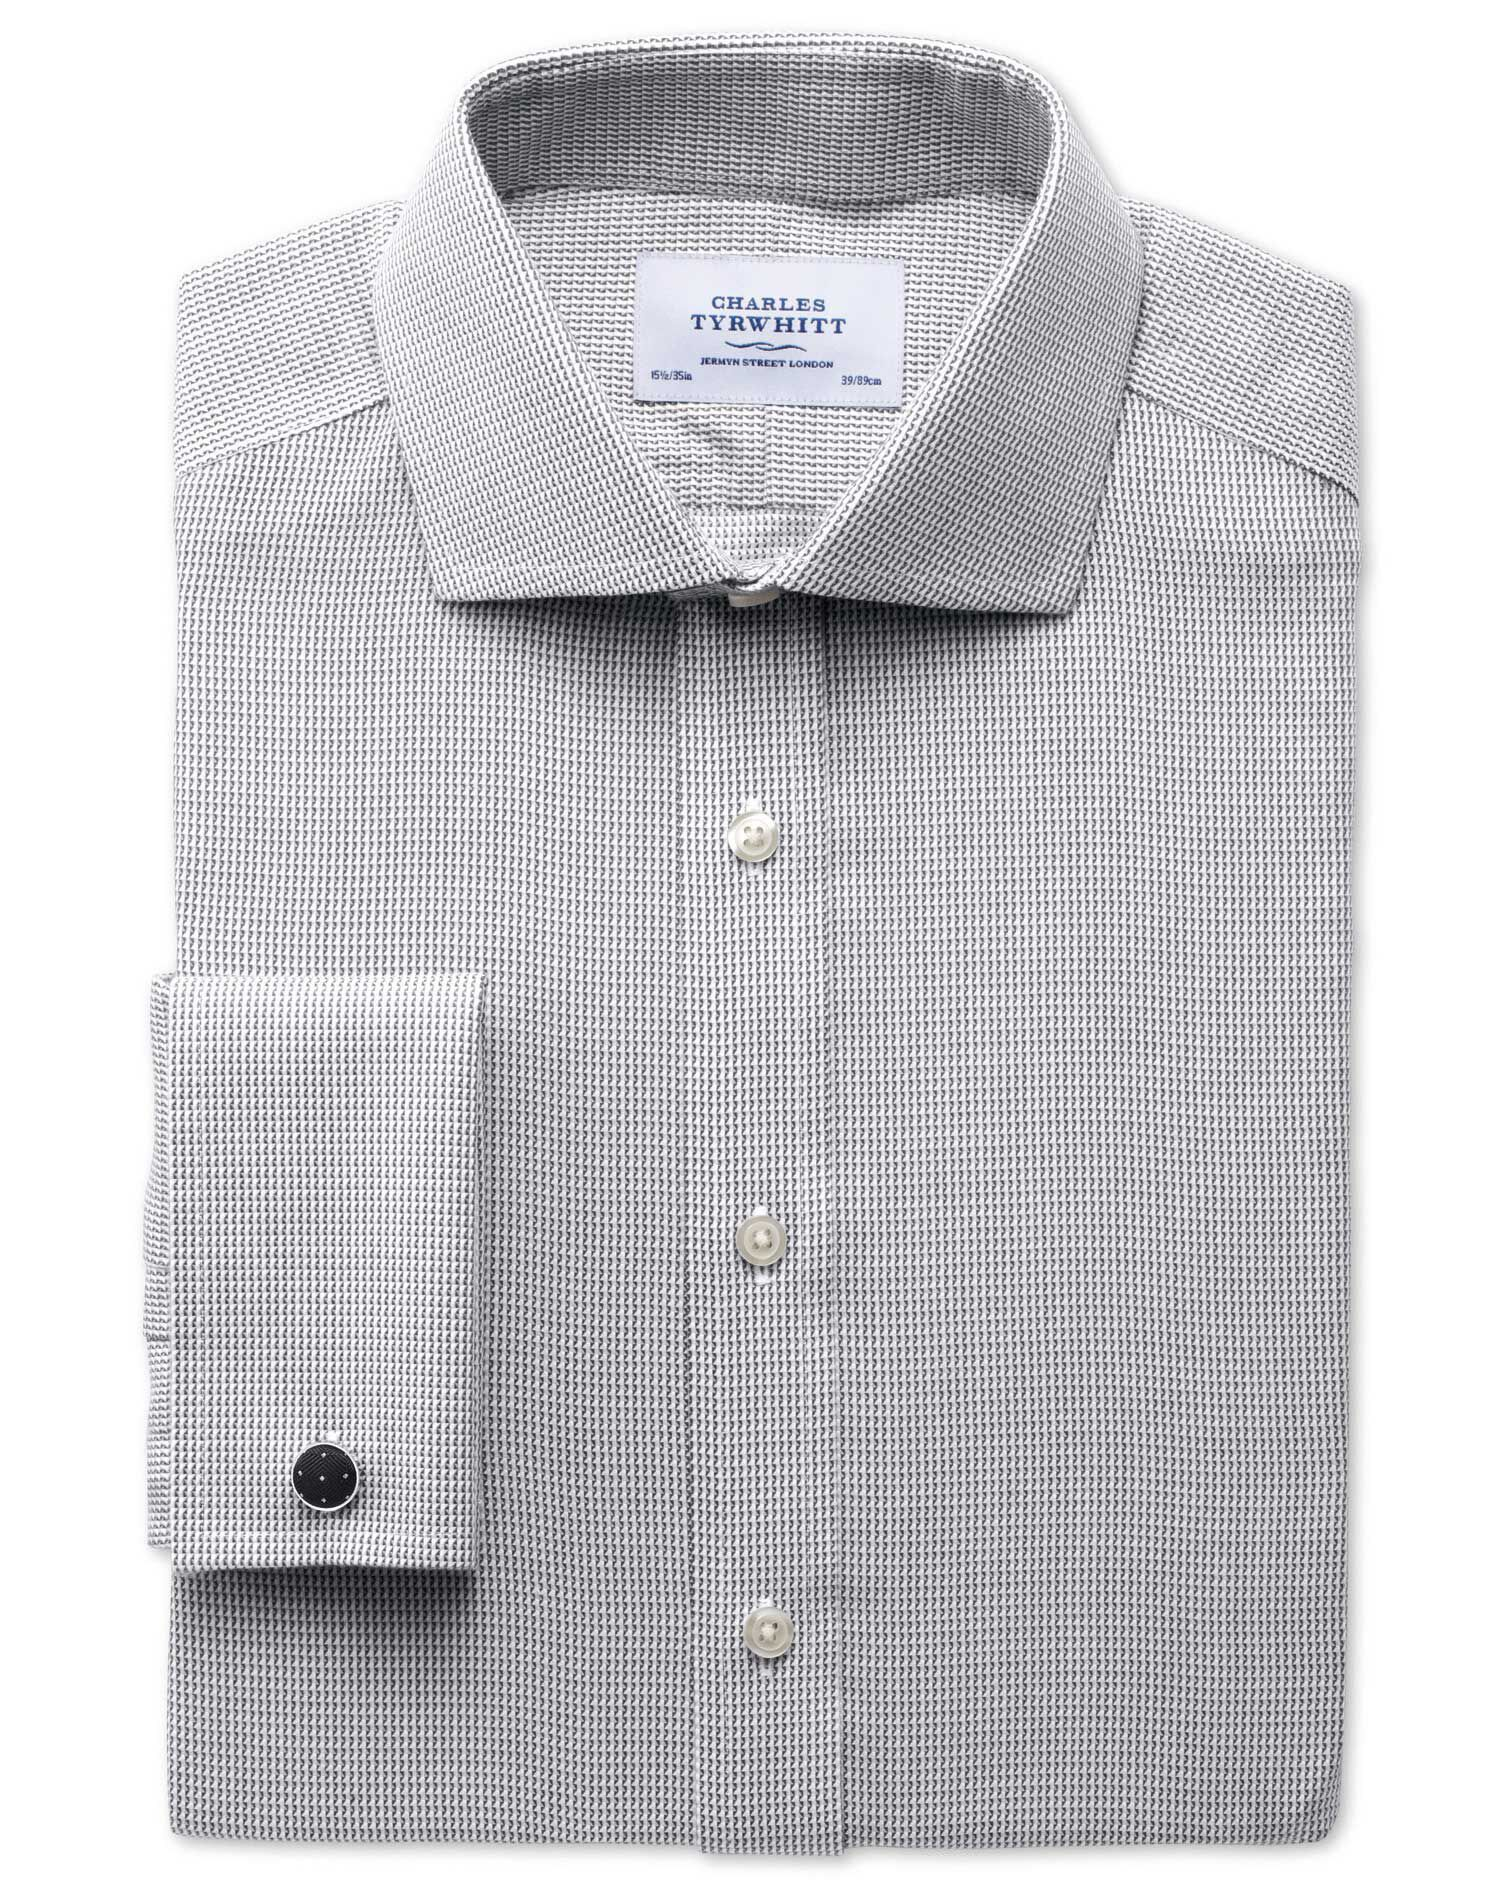 Extra Slim Fit Cutaway Collar Non-Iron Grey Cotton Formal Shirt Double Cuff Size 16/38 by Charles Ty